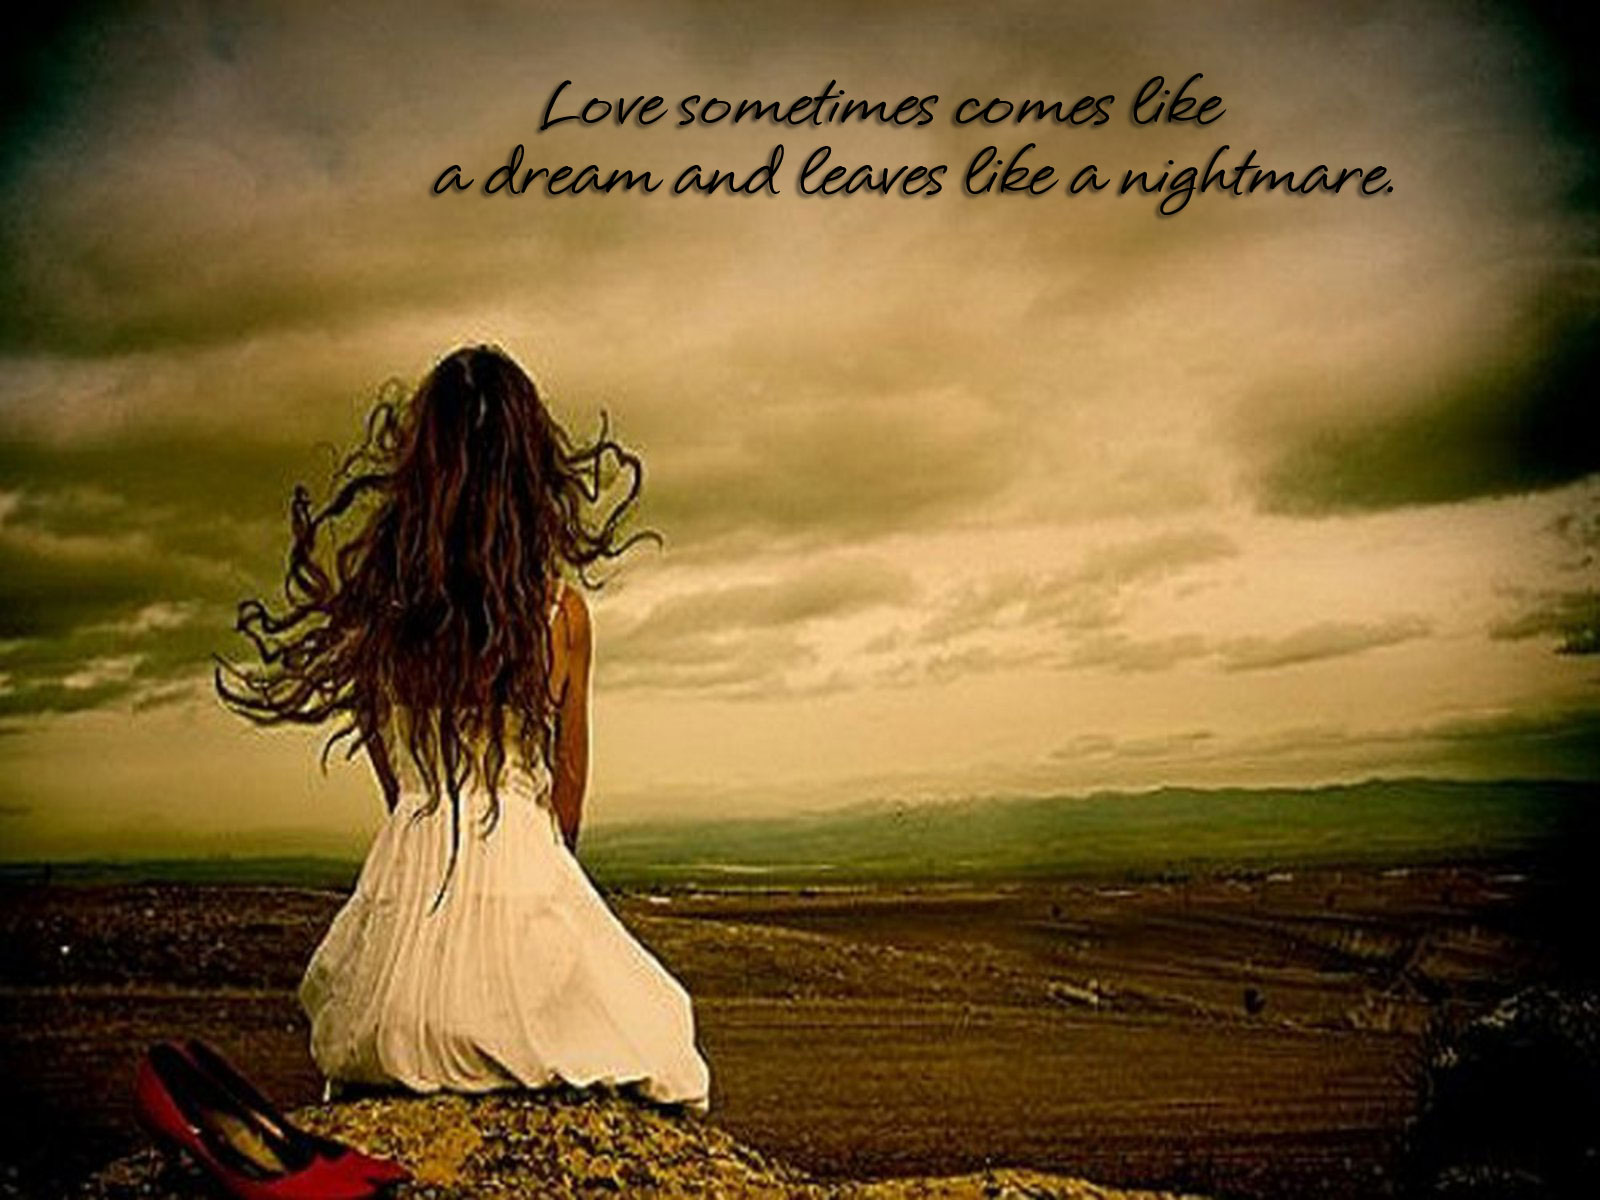 Sad Love Quotes Wallpaper For Mobile : Sad Love Quotes Wallpapers Love Wallpapers With Quotes ...